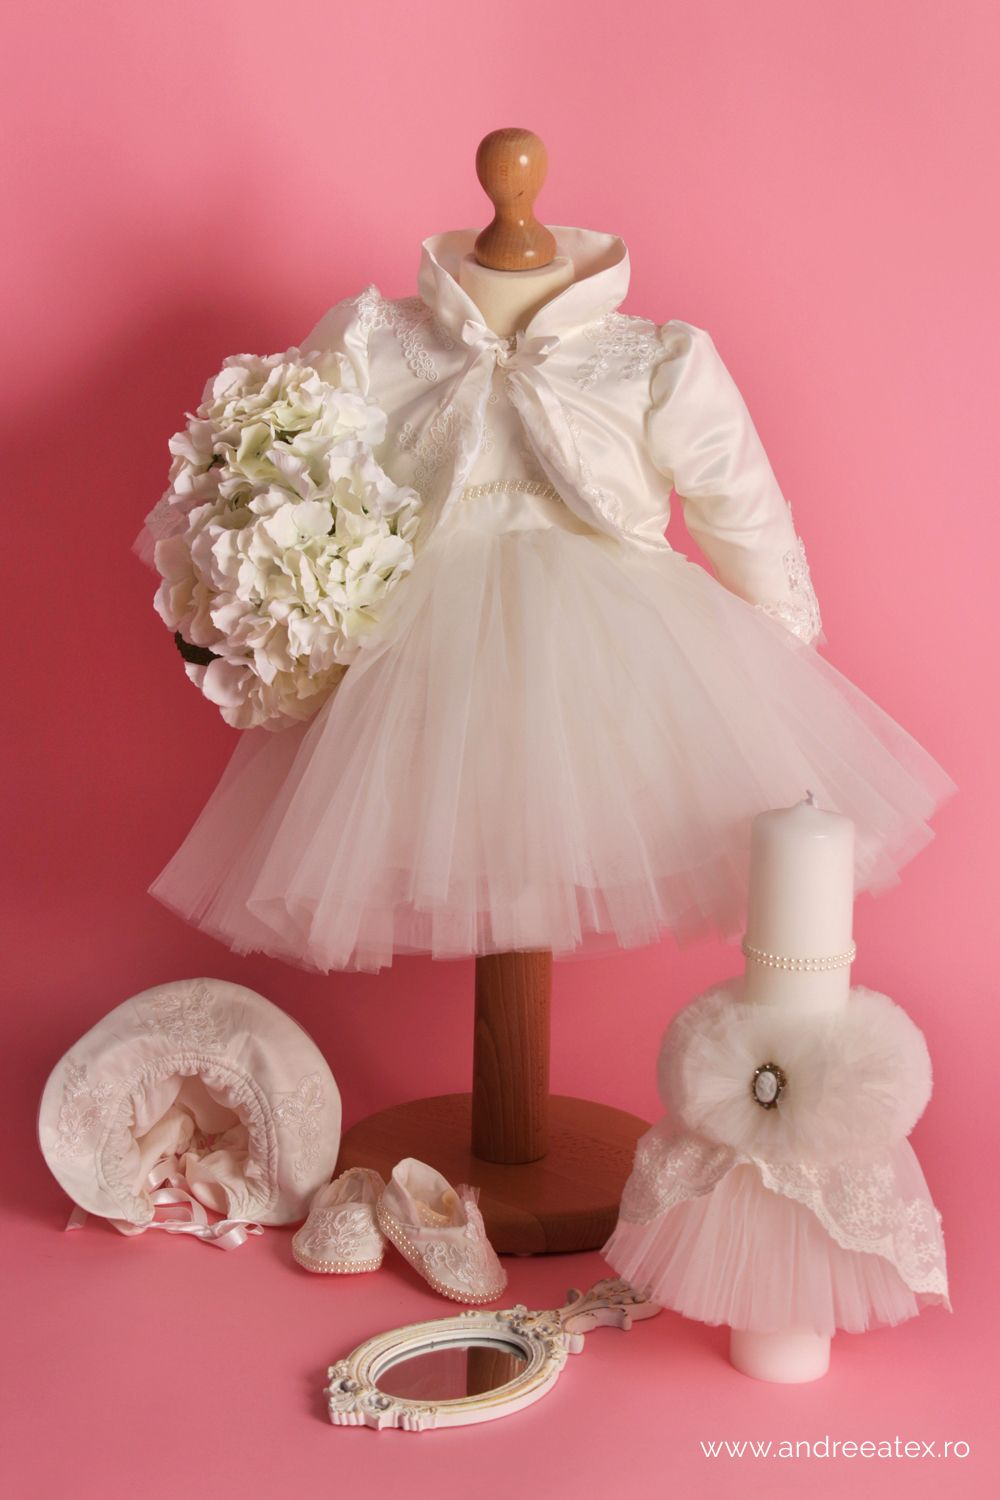 Set Botez Fete Rochita Botez Fete Christening Gowns And Dresses For